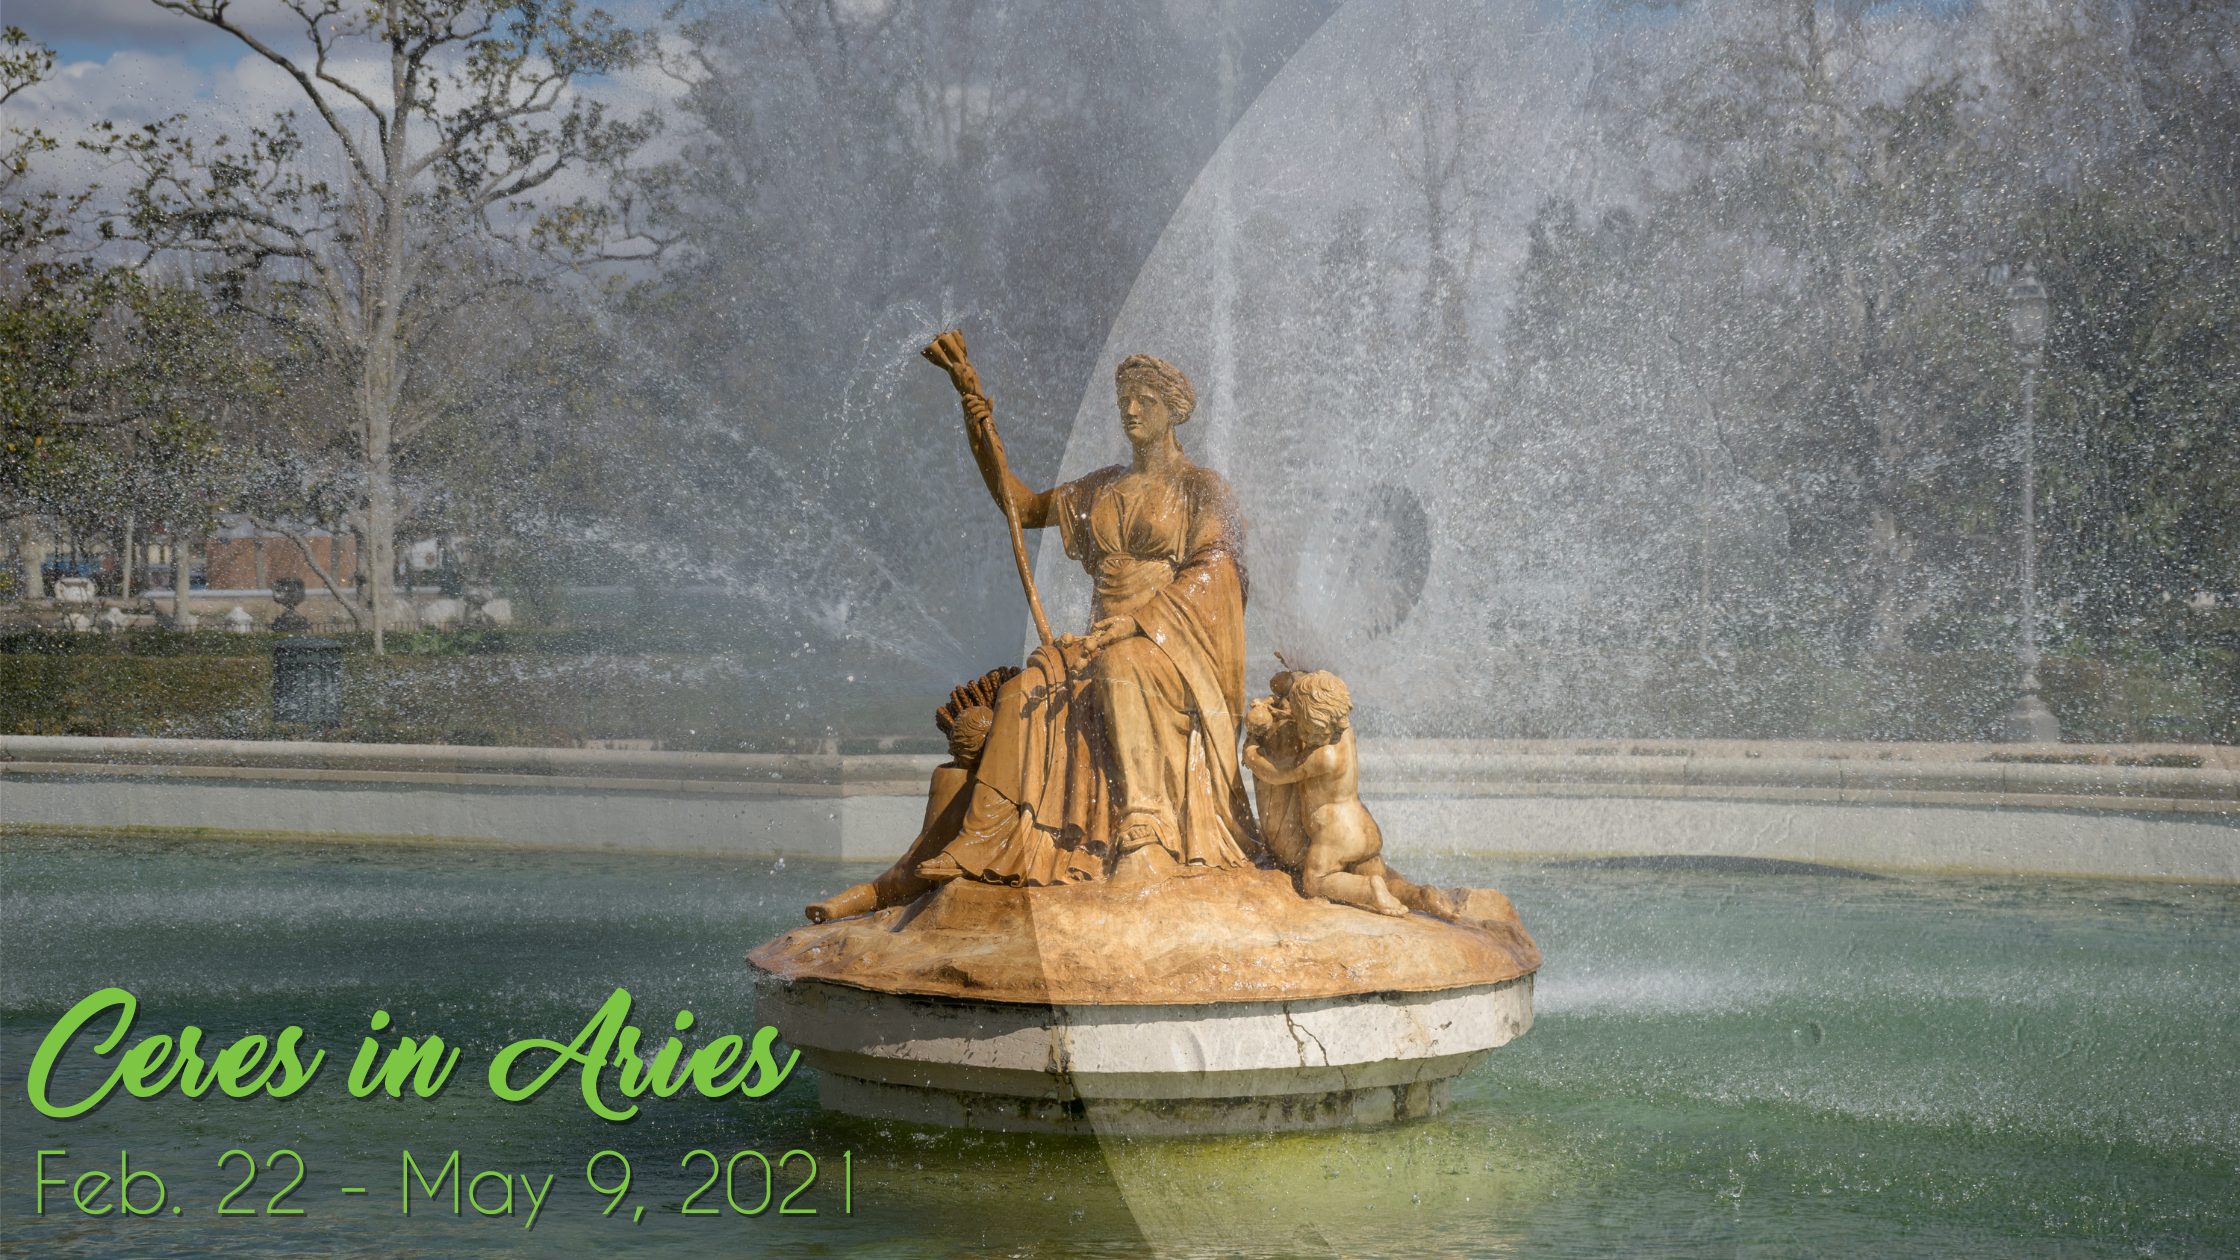 Ceres in Aries – Feb. 22 – May 9, 2021